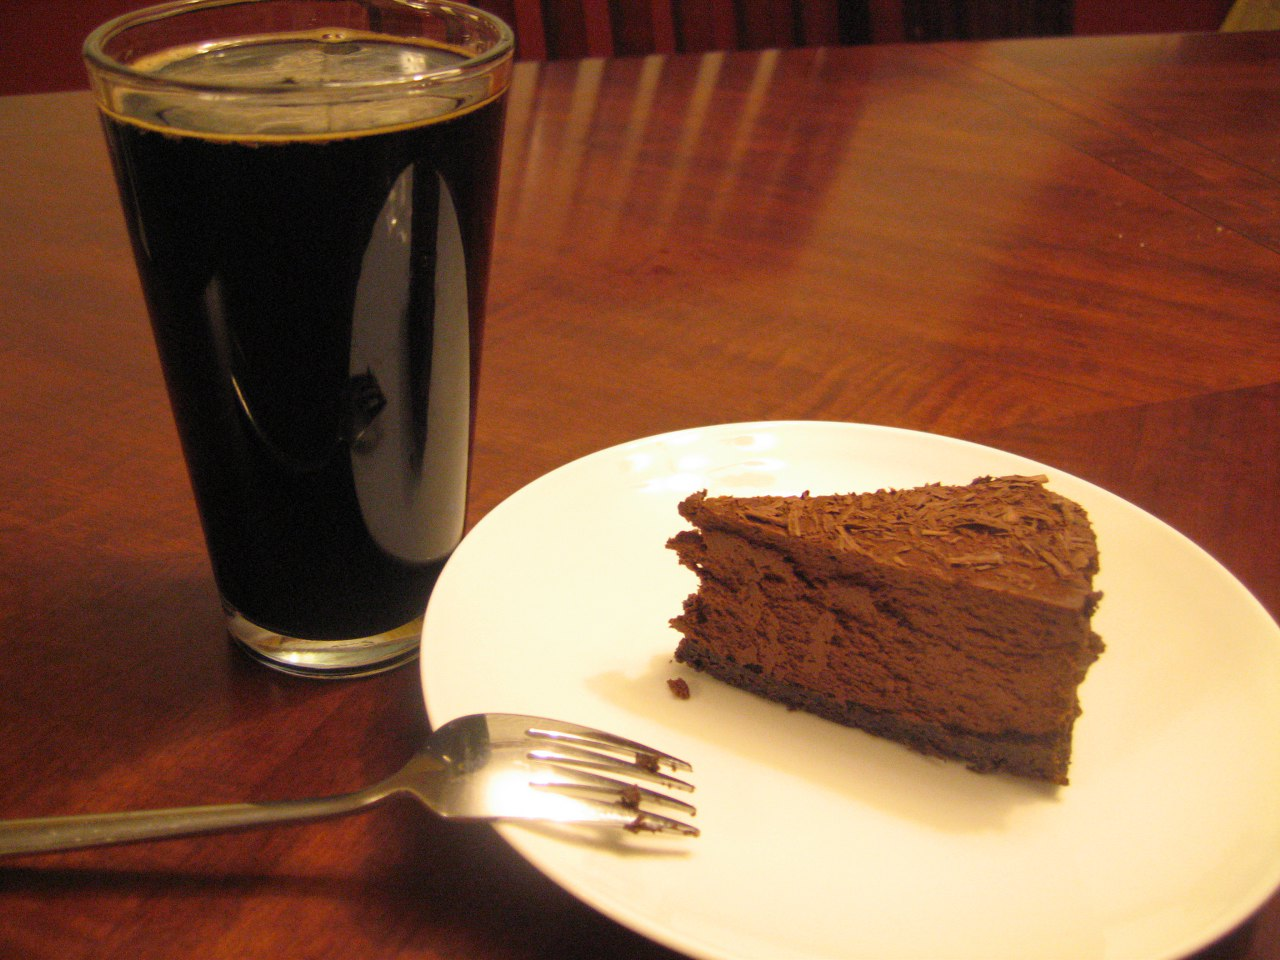 Glass of Stout and Cake